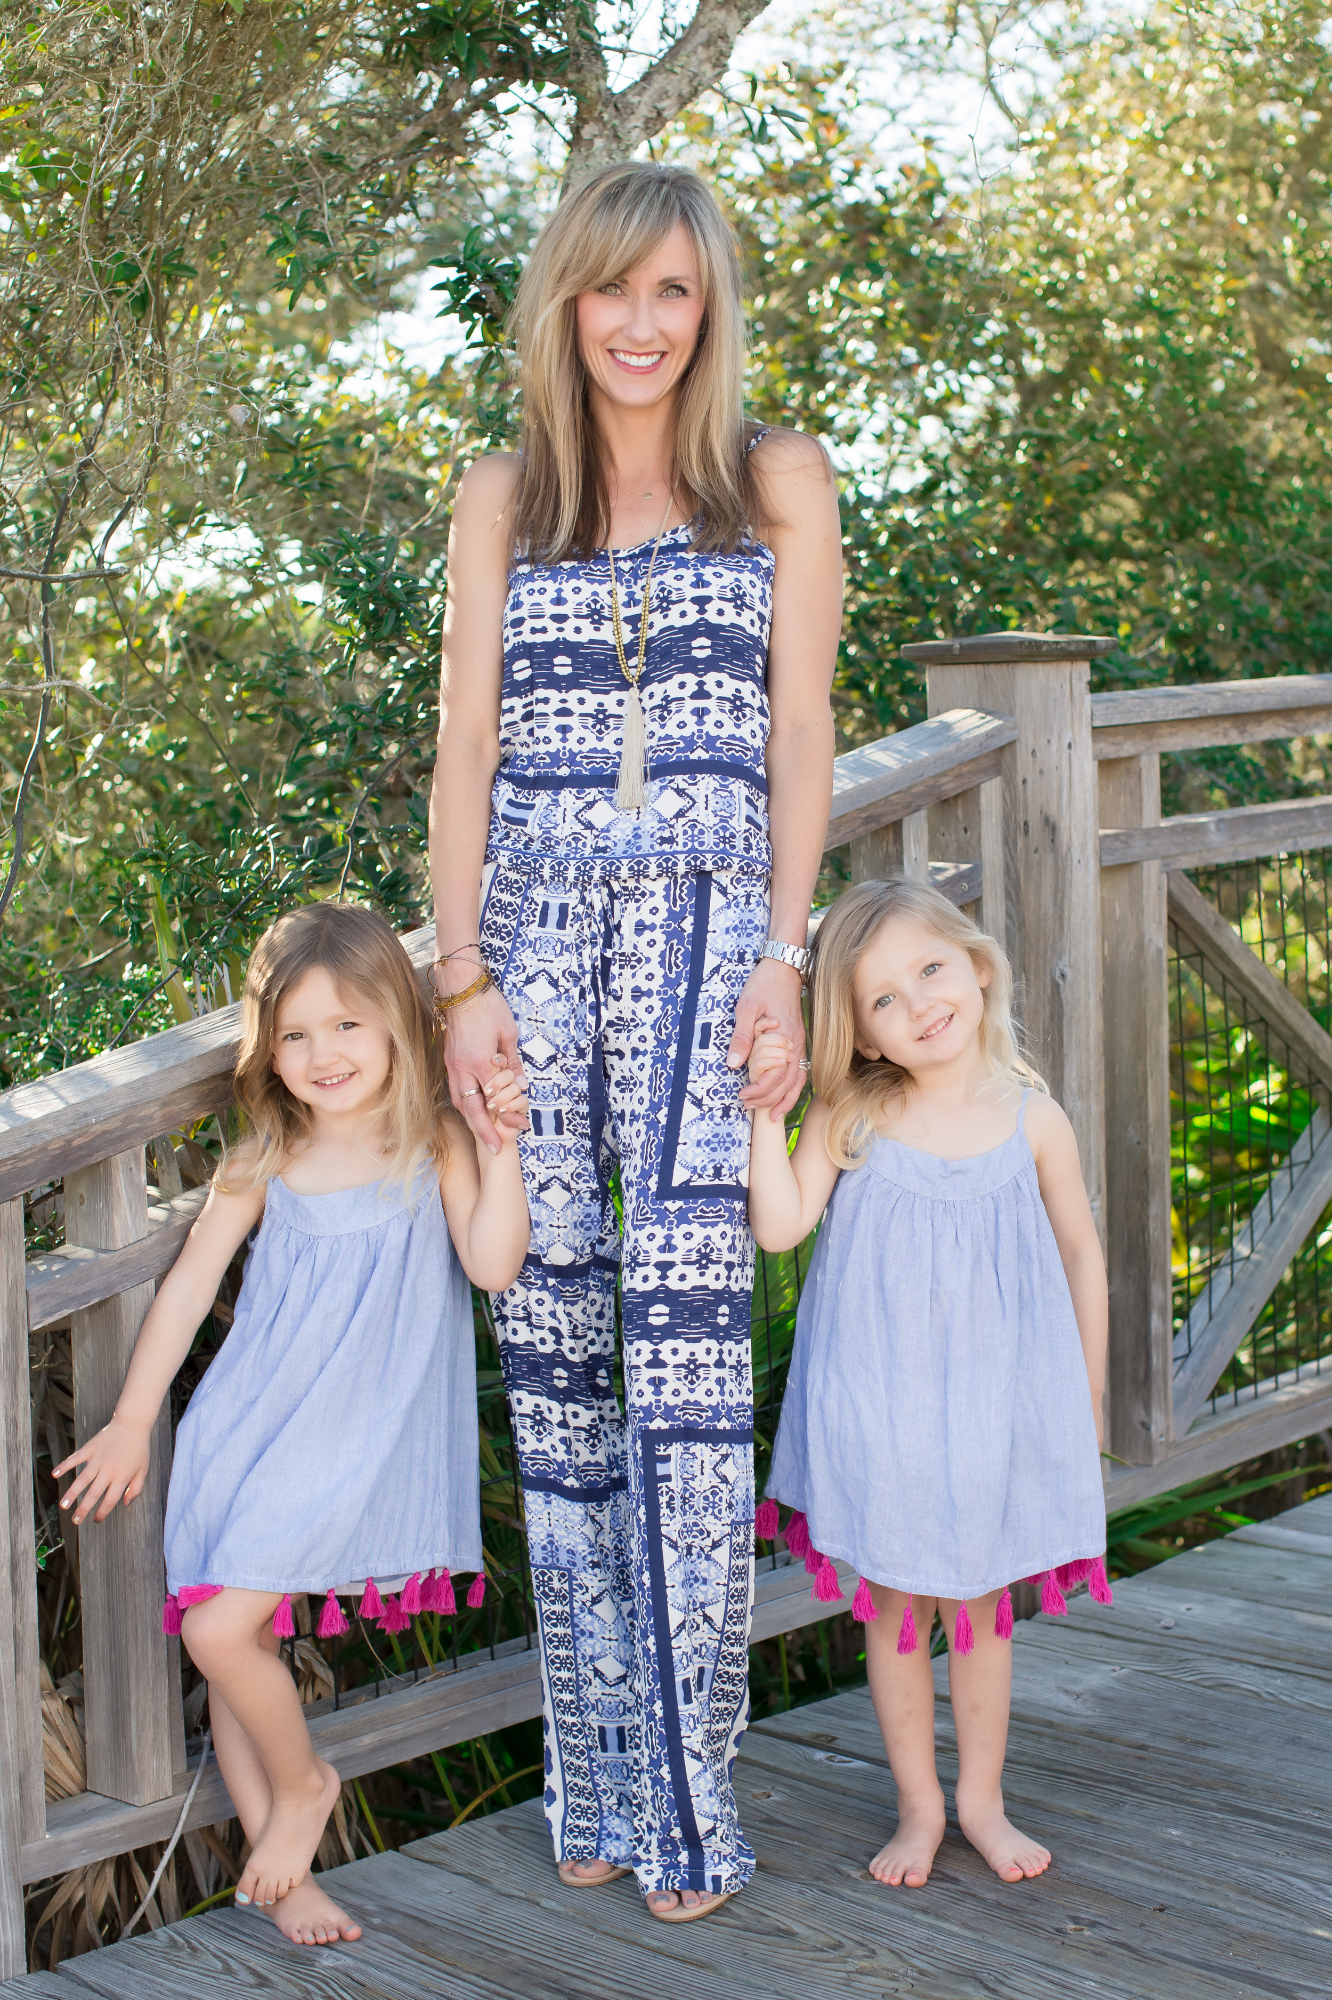 Cooper (left), Riley (right) and me at a photoshoot at Watersound Beach Club board walk for 30A Street Style. -Circa 2015.  Amanda Sause Photography.